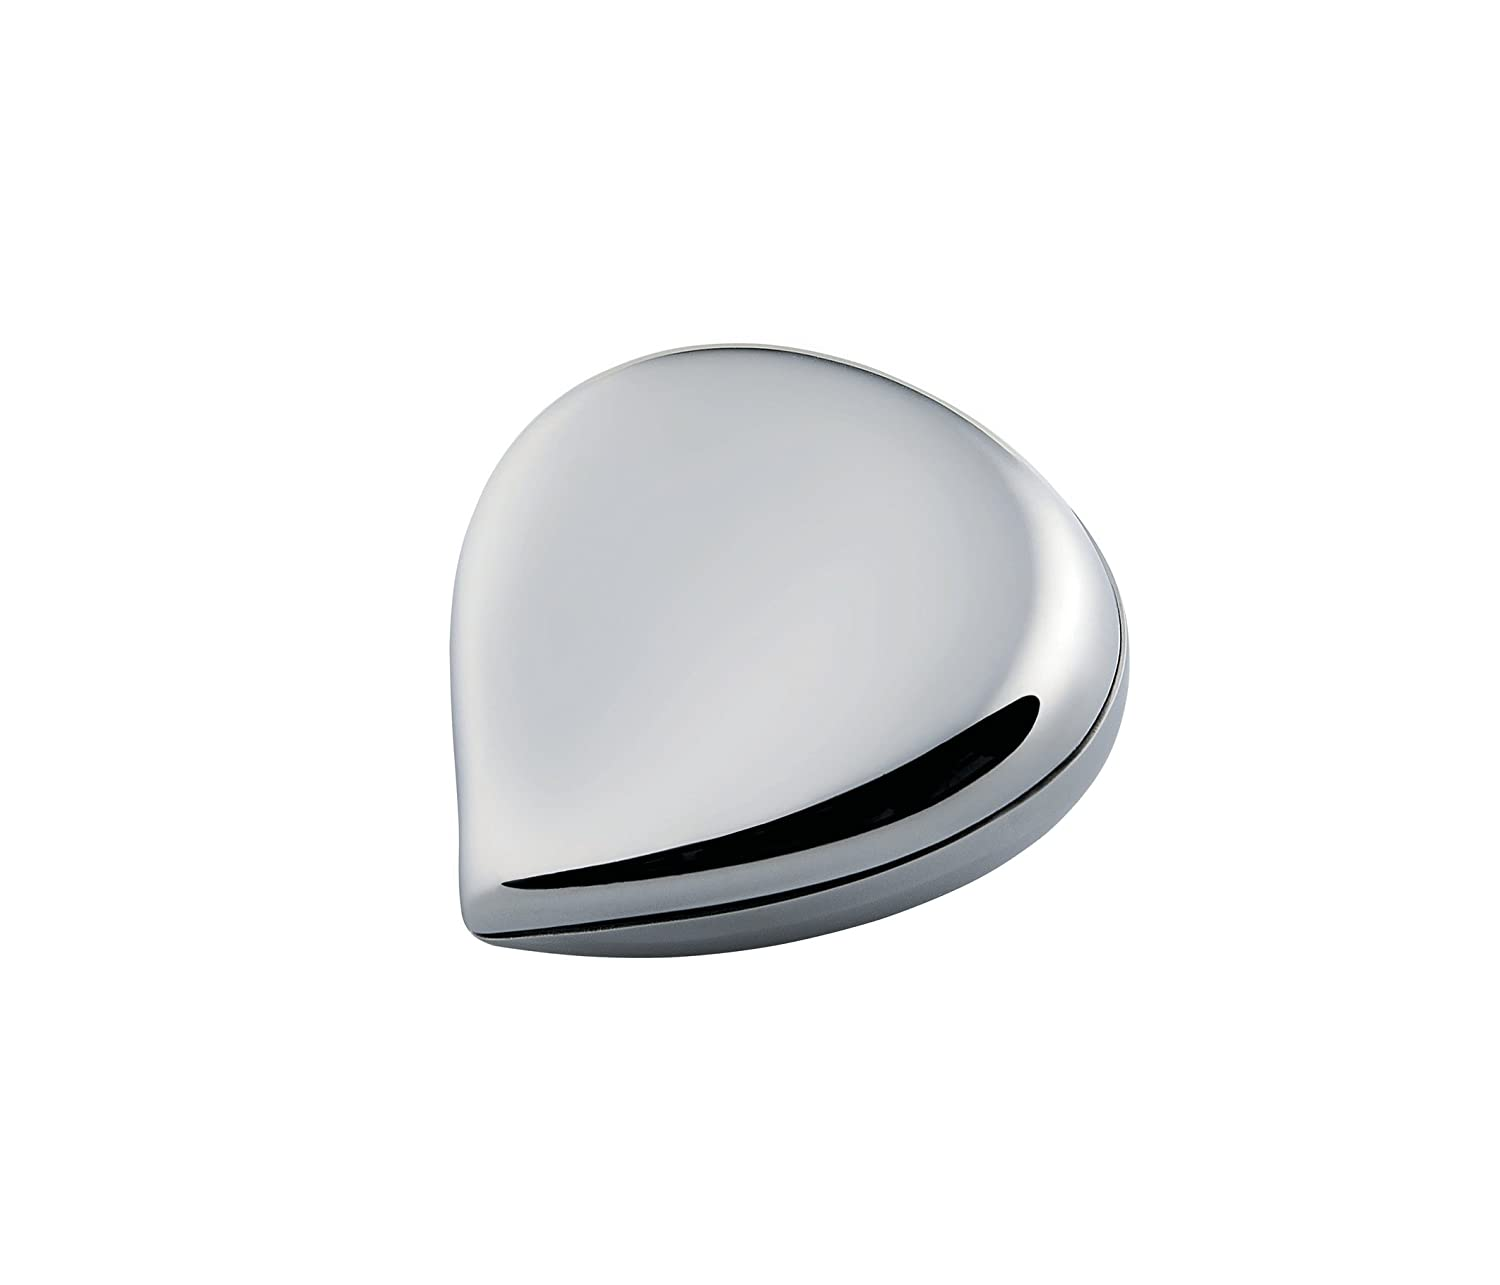 Amazon.com Alessi Chestnut Pill Box Aleesi CHB01 Silver Home u0026 Kitchen  sc 1 st  Amazon.com : stainless steel pill box - Aboutintivar.Com